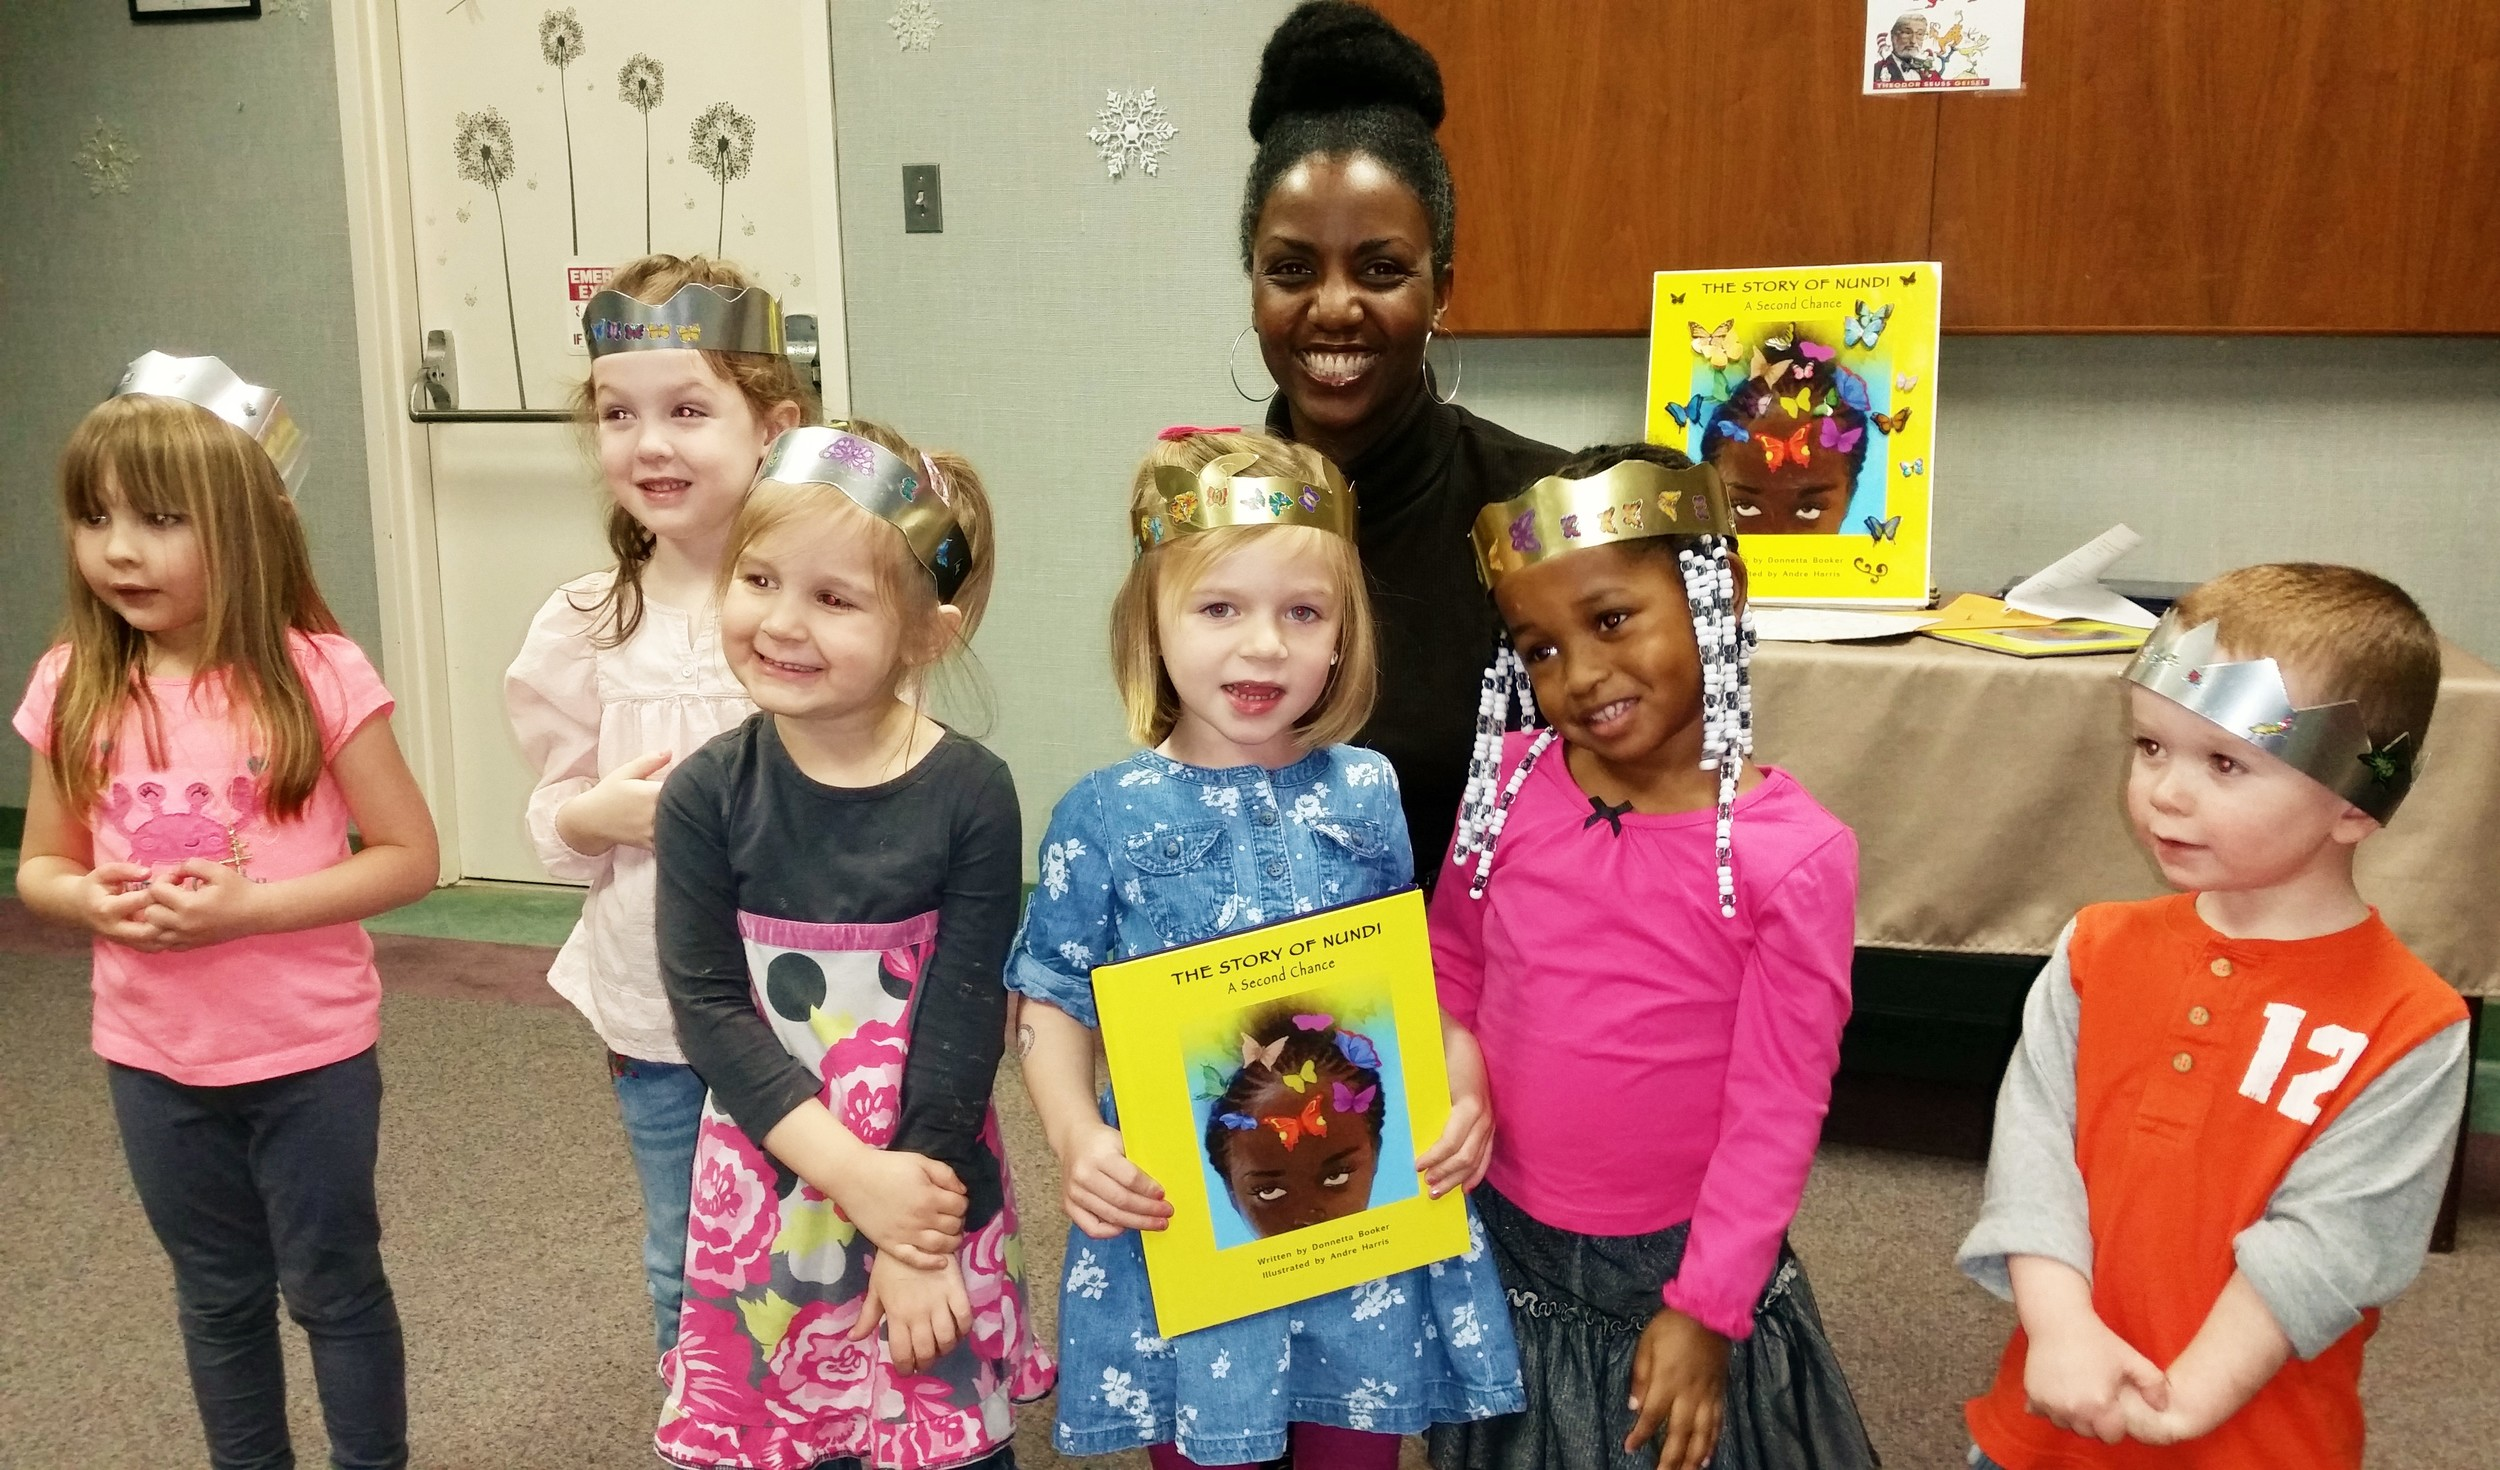 Story time is over.  Check out those cool hand-crafted crowns!